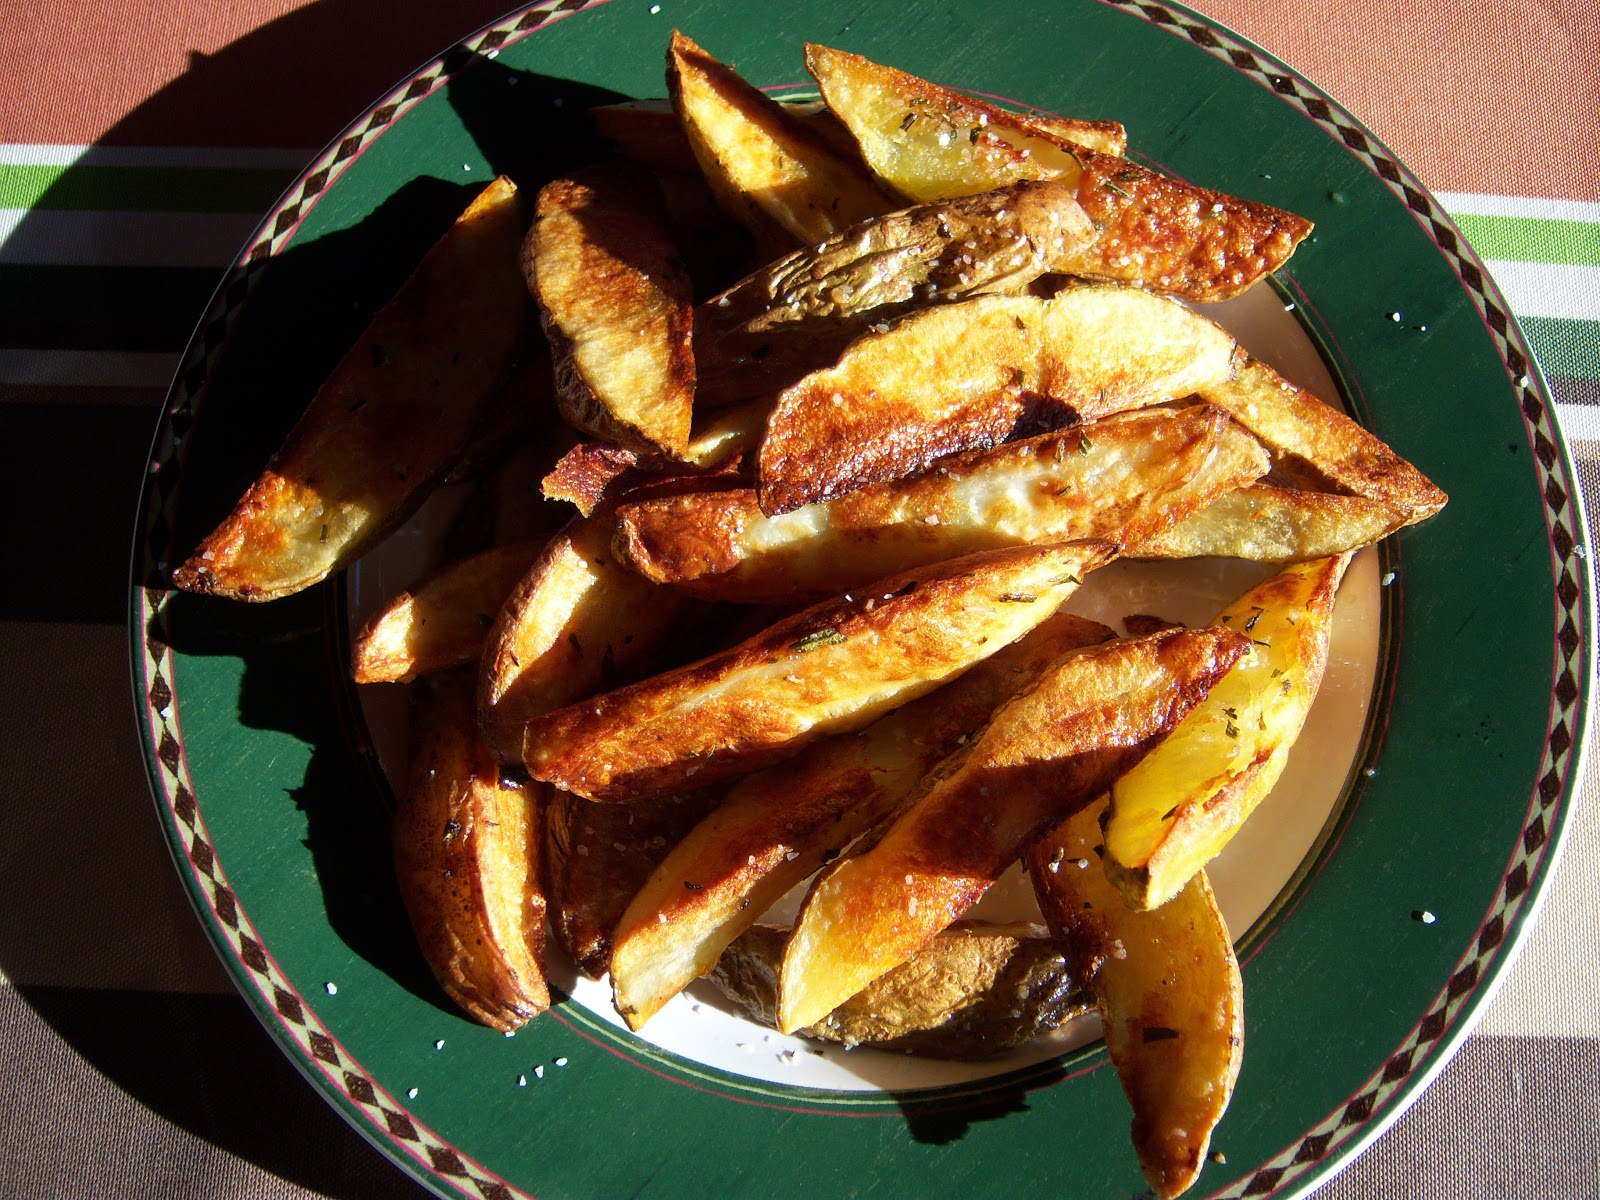 how to make french fries out of potatoes in oven